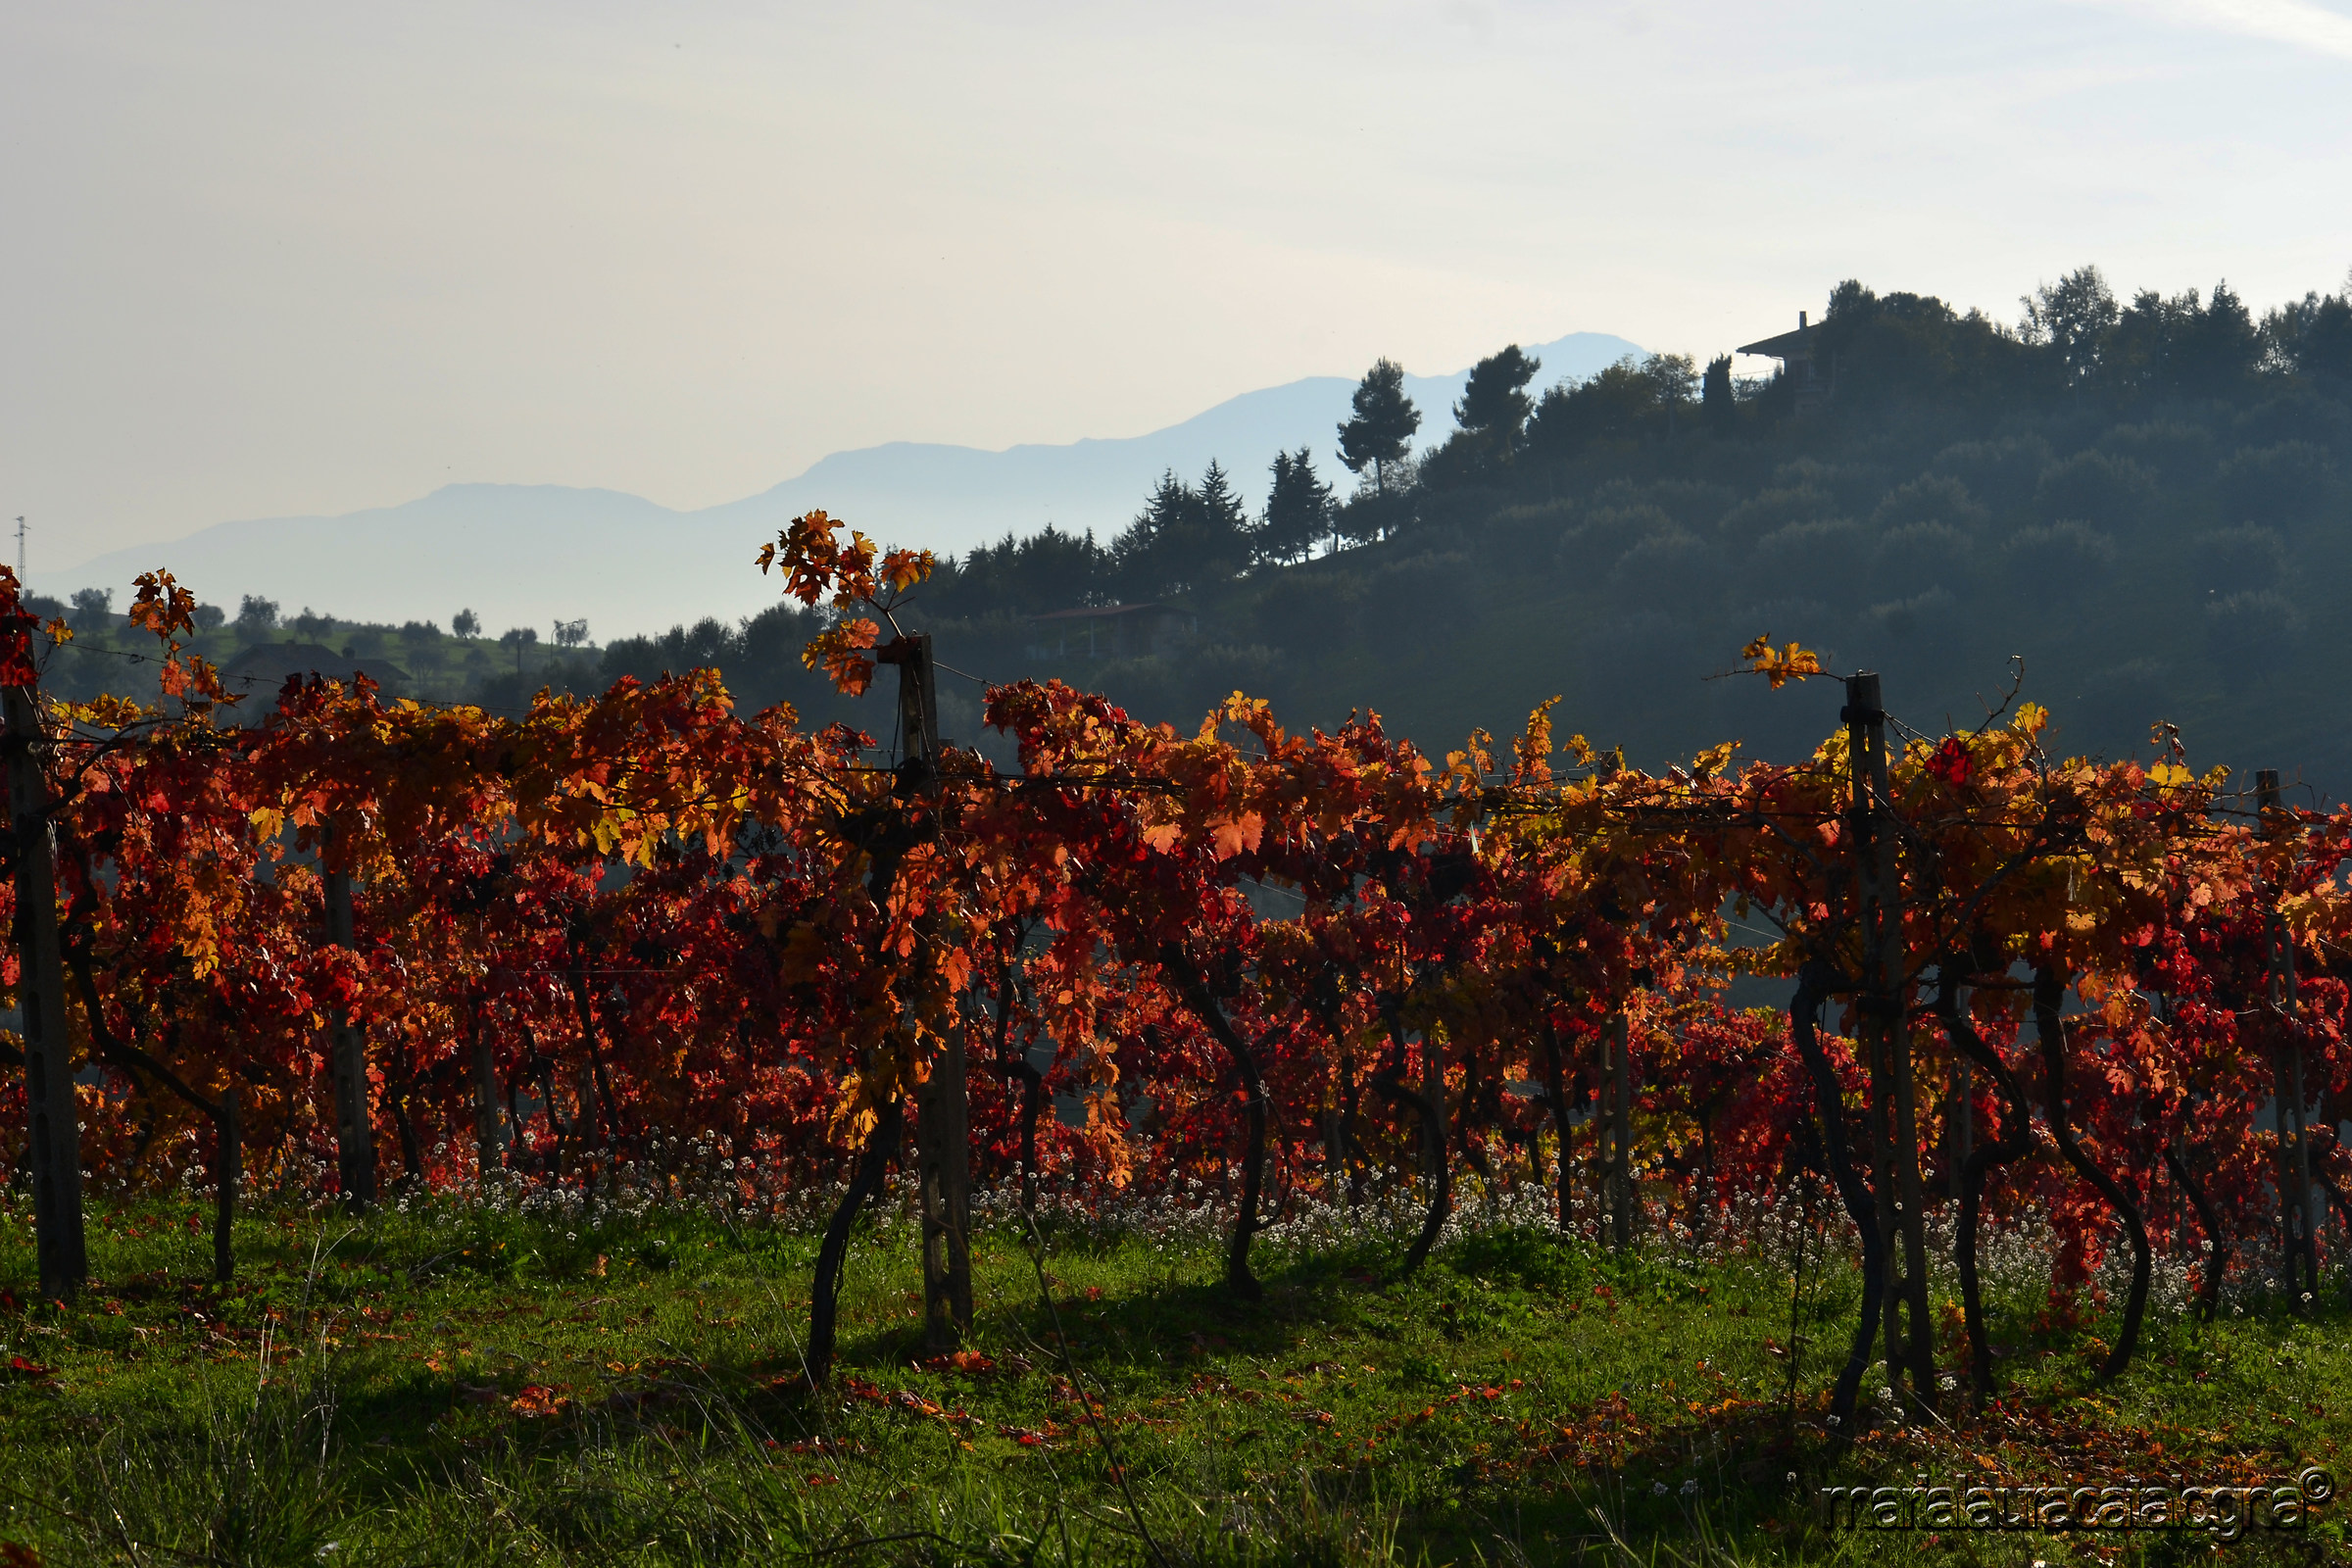 Vineyards in the province of Teramo...